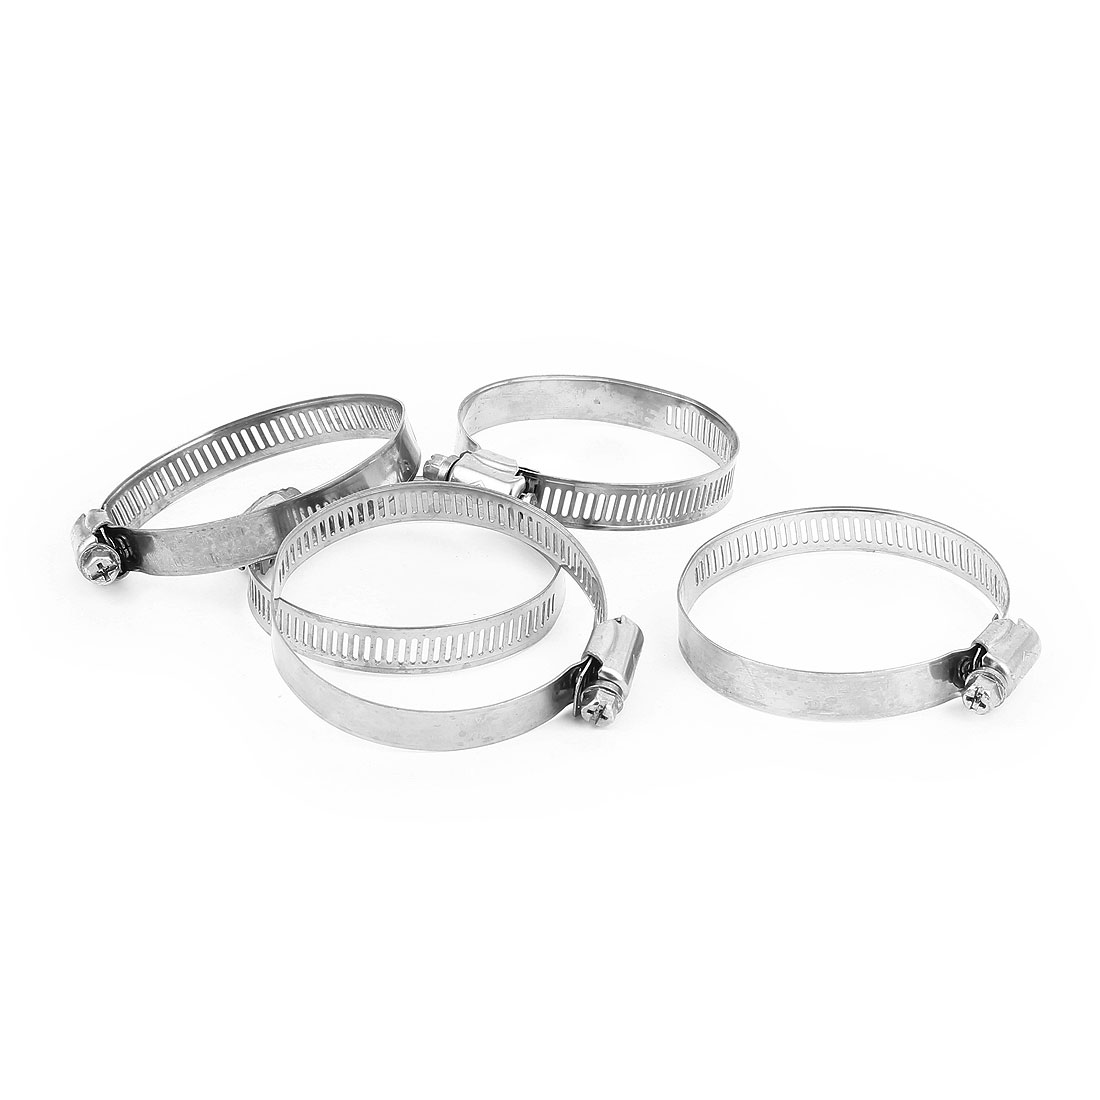 5 Pcs 46-70mm/1.8-2.8in Adjustable Worm Gear Hose Clamp Hoop Silver Tone